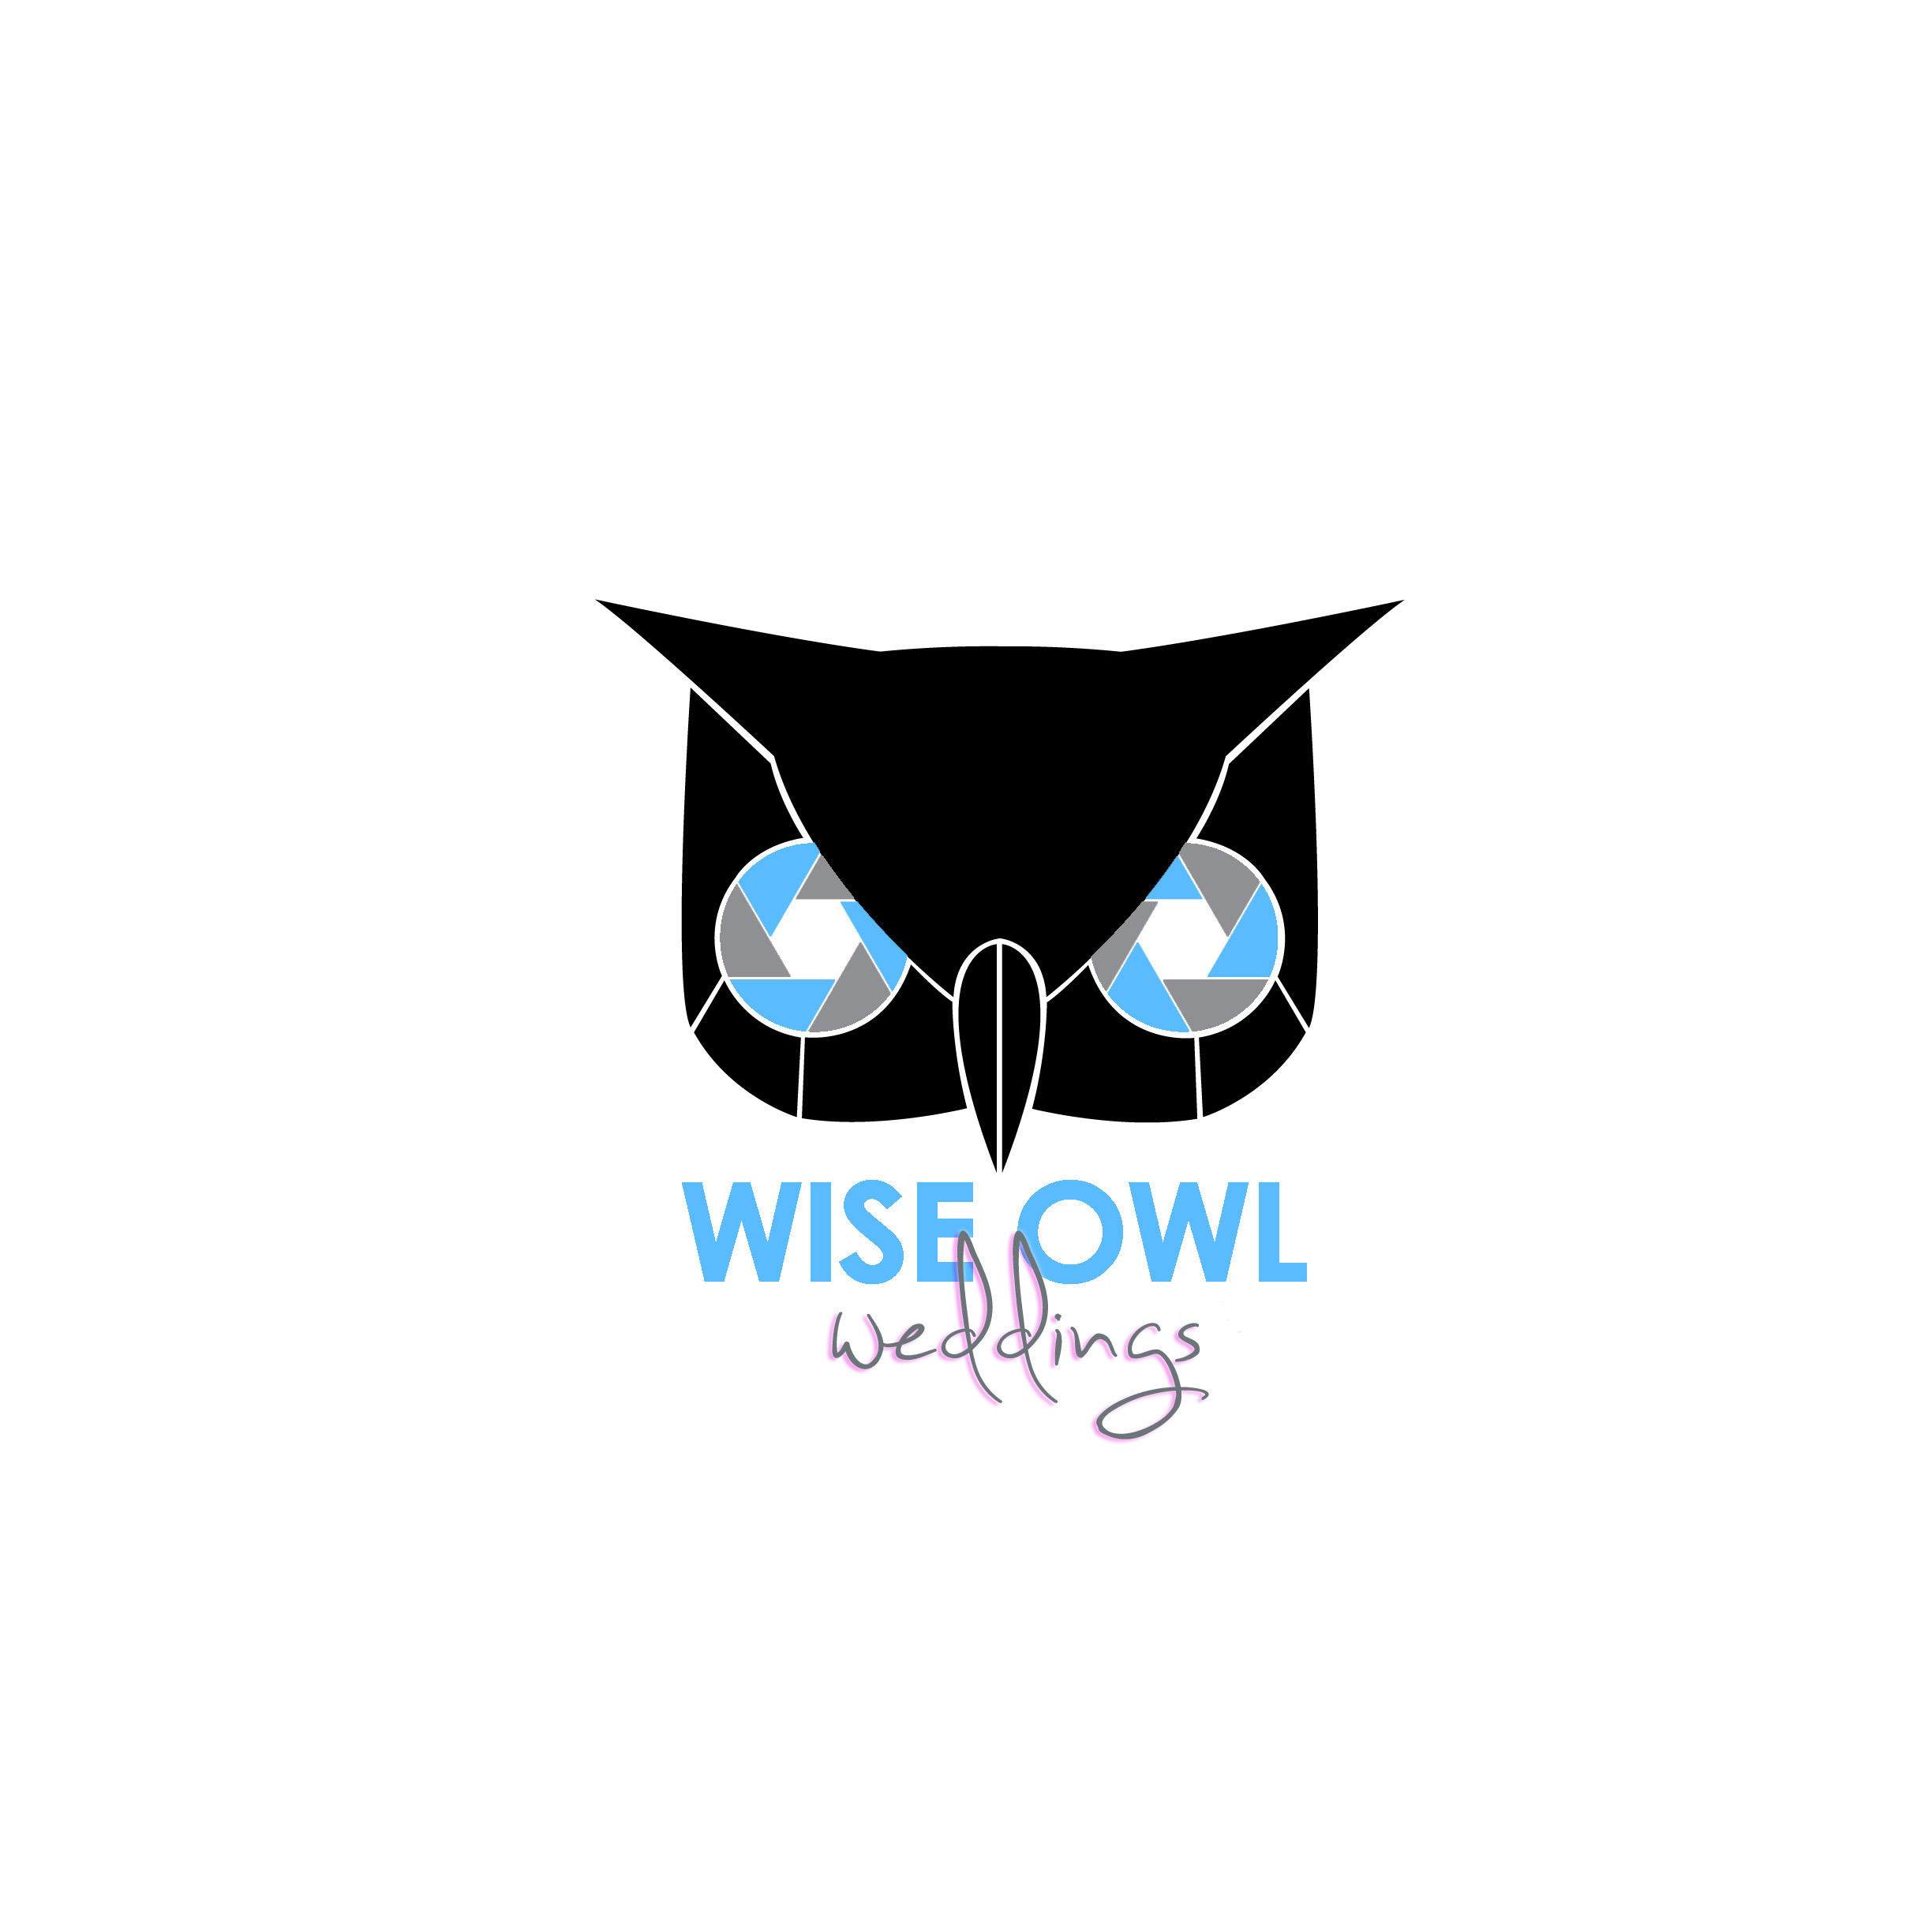 Wise Owl Weddings - Making Your Special Day Come To Life...